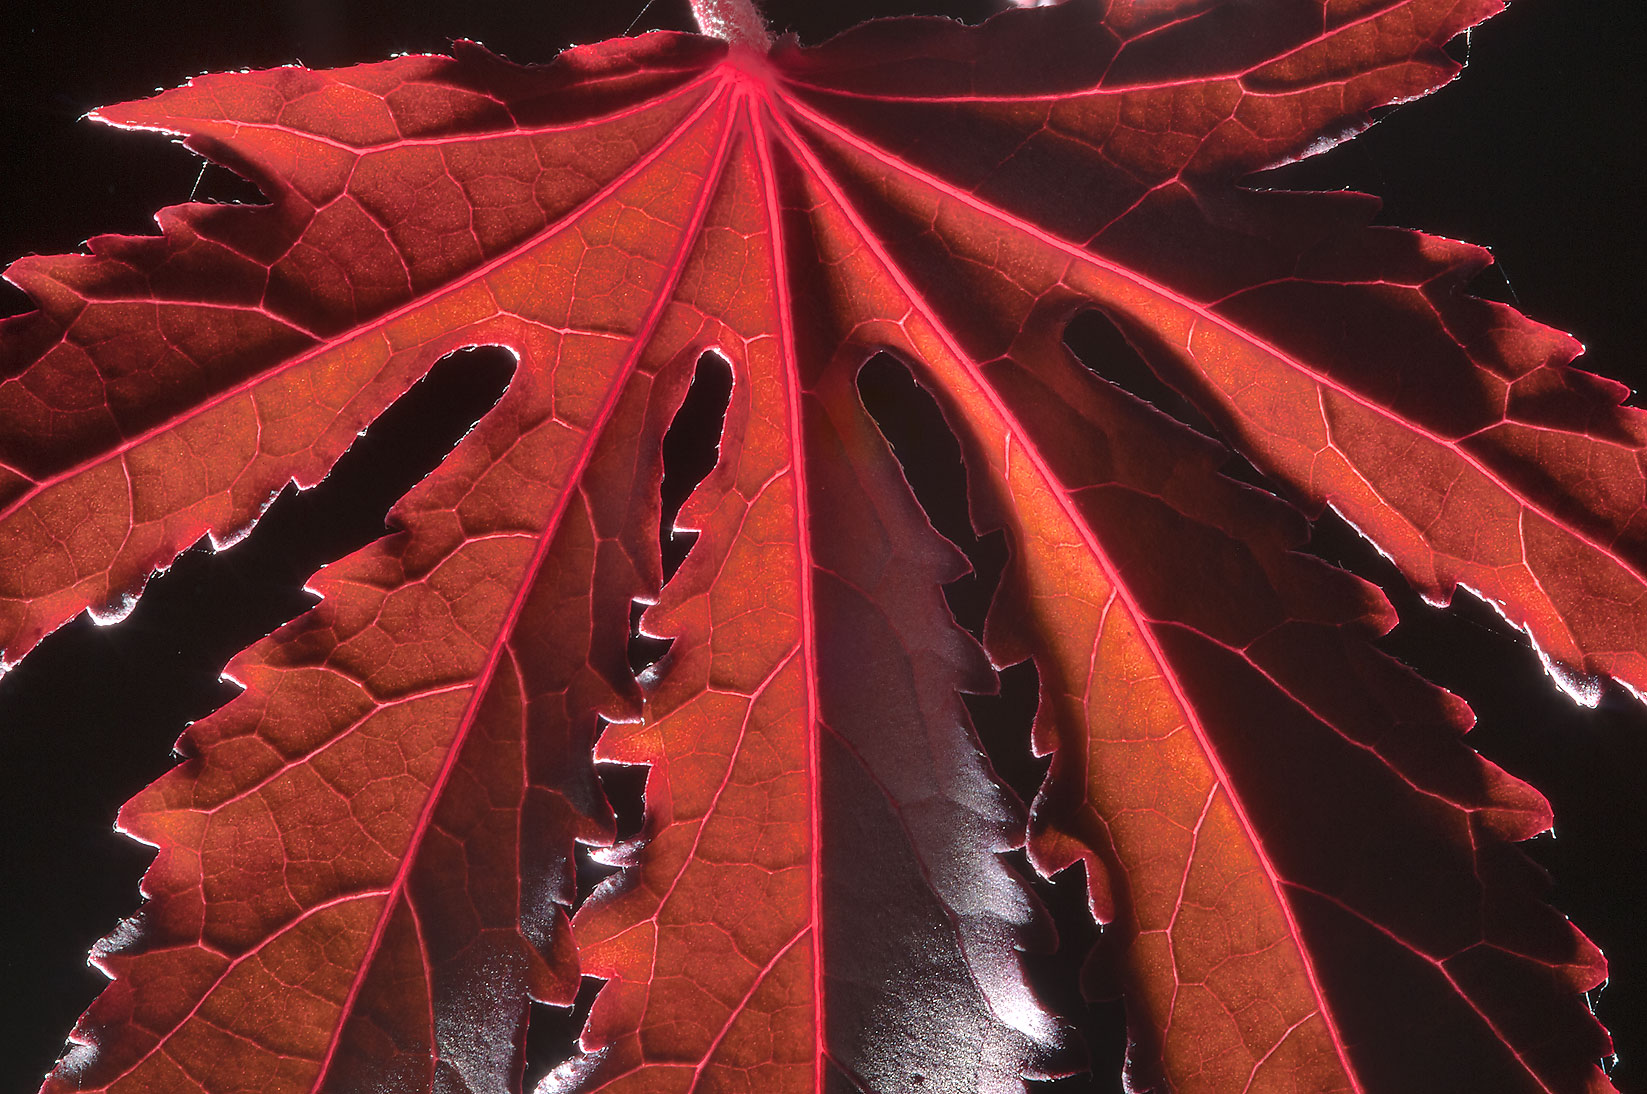 Palmately lobed red leaf in TAMU Horticultural...M University. College Station, Texas